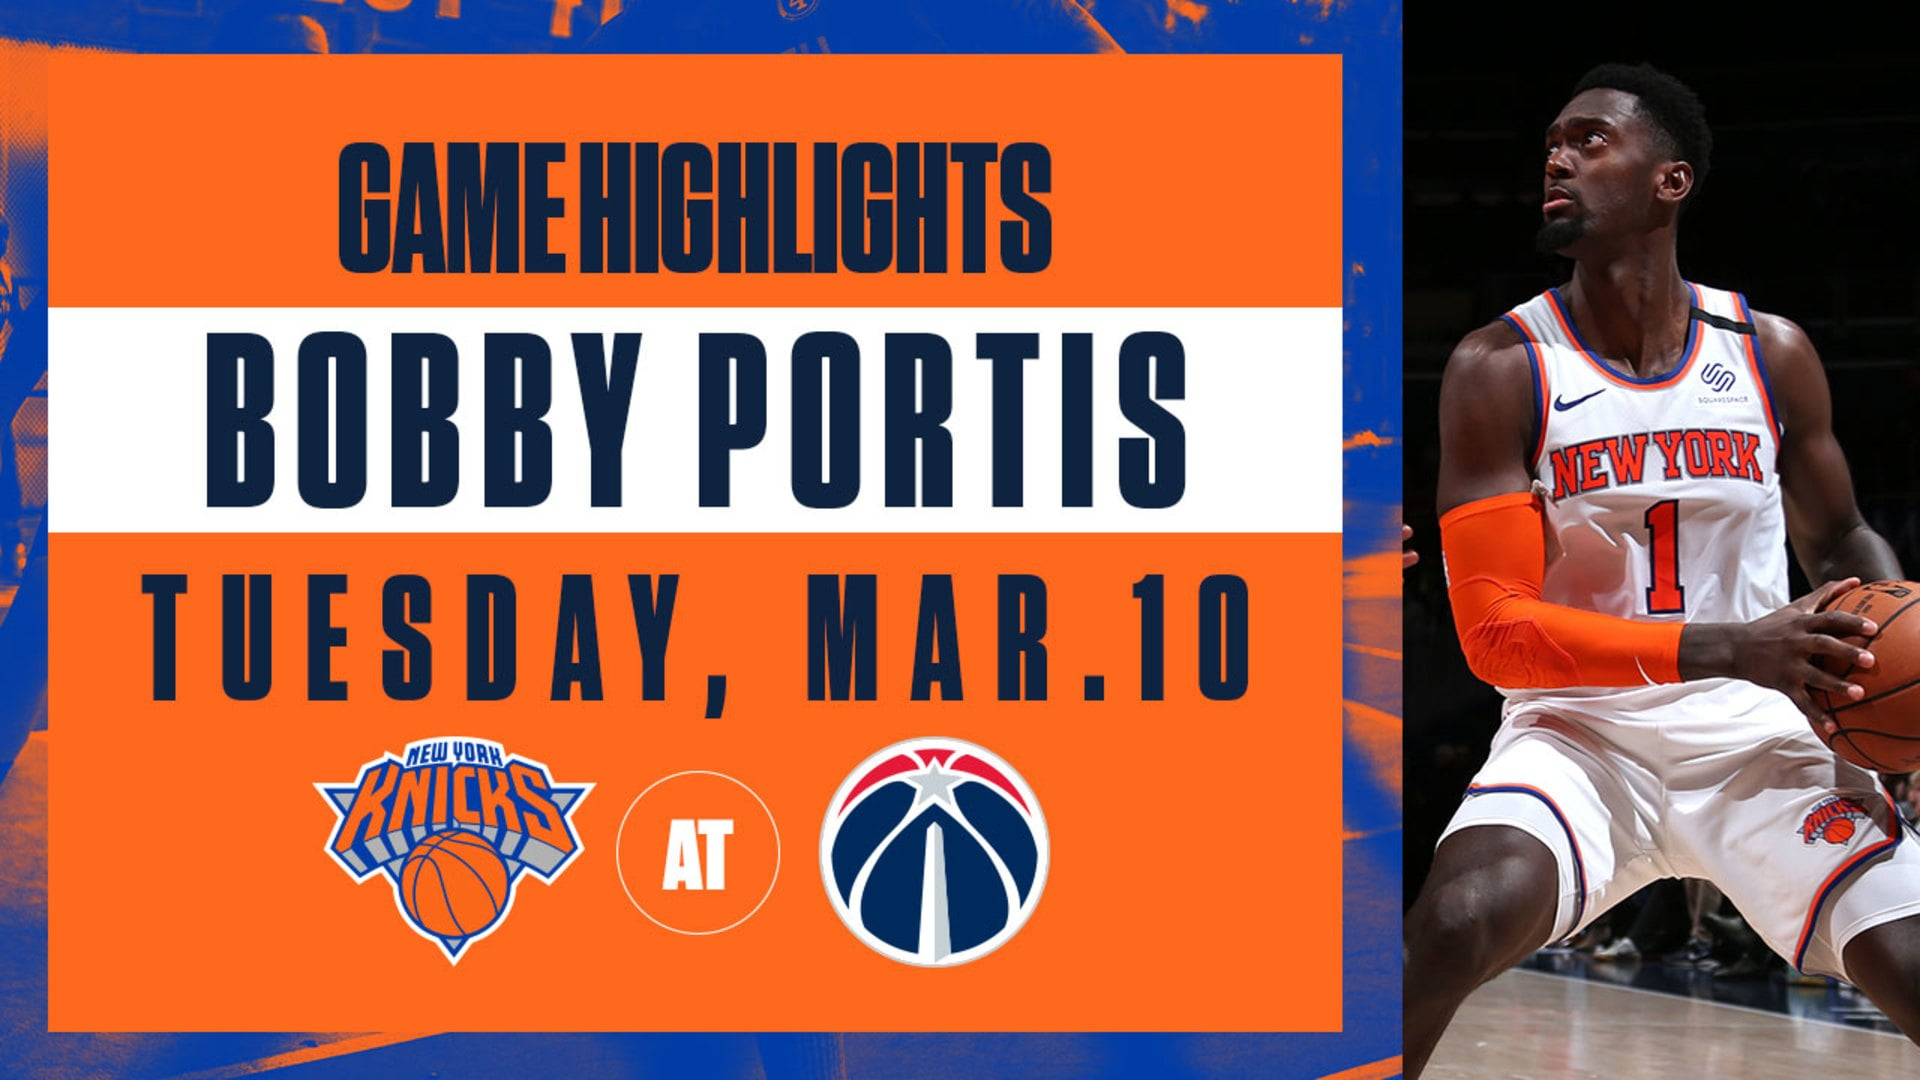 Highlights: Bobby Portis (20 Points) | Knicks @ Wizards